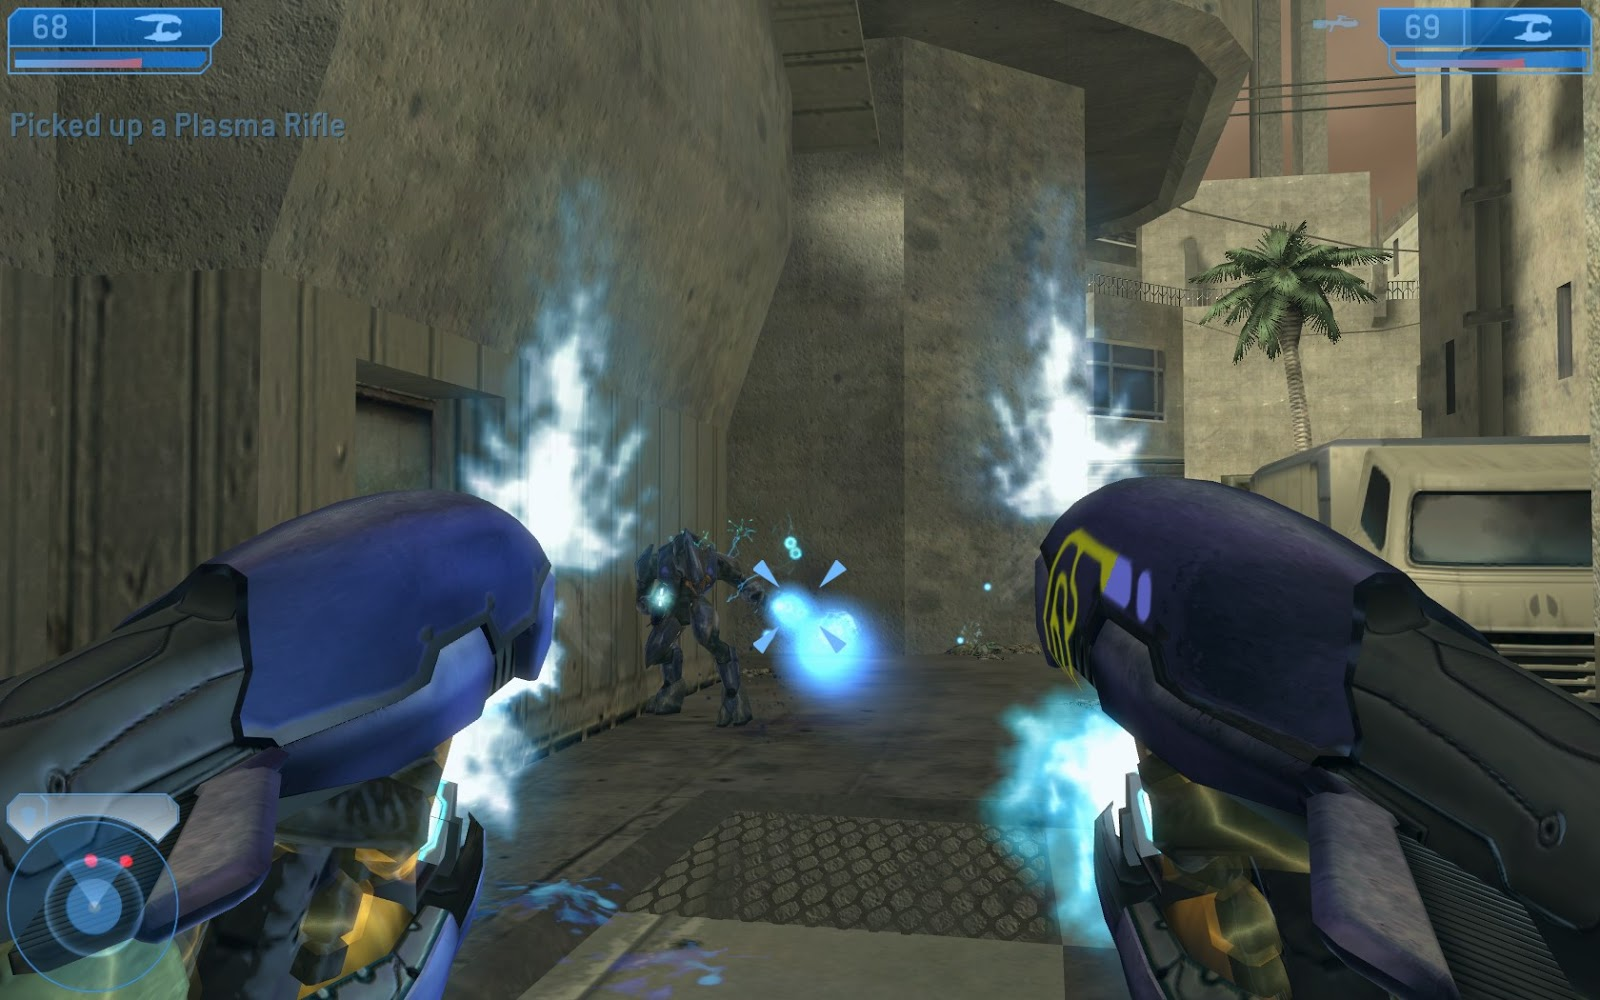 halo 2 full pc game download torrent